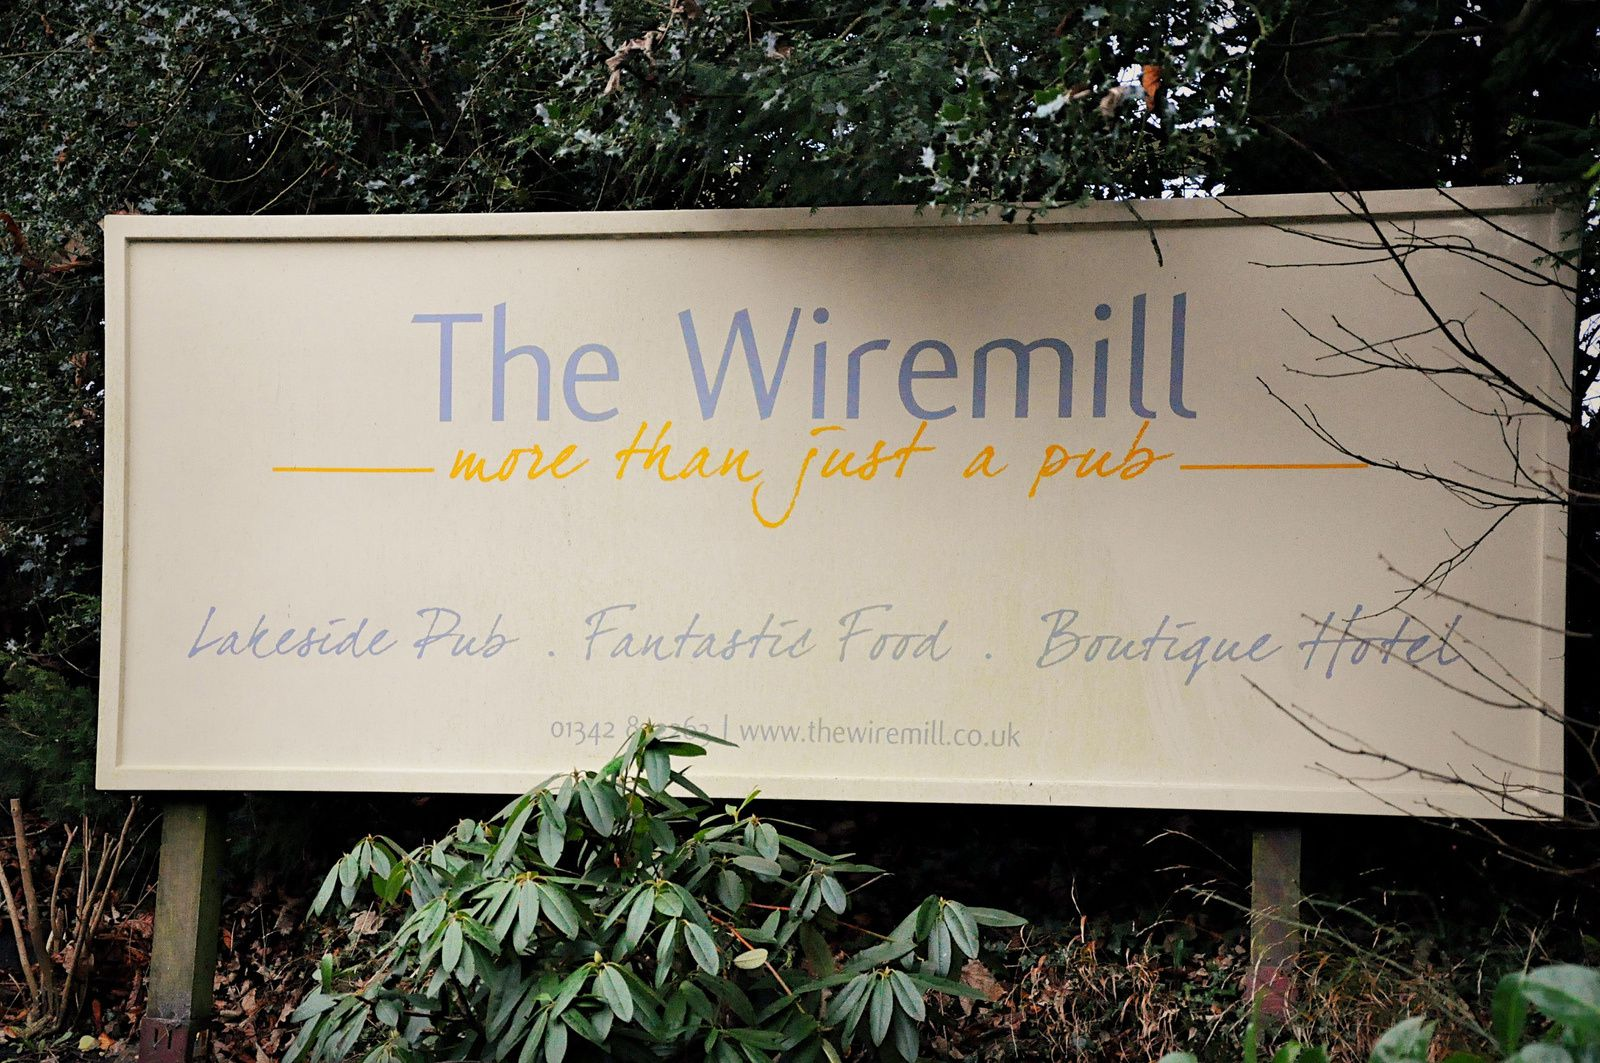 Week-end en Angleterre... The Wiremill, Pub